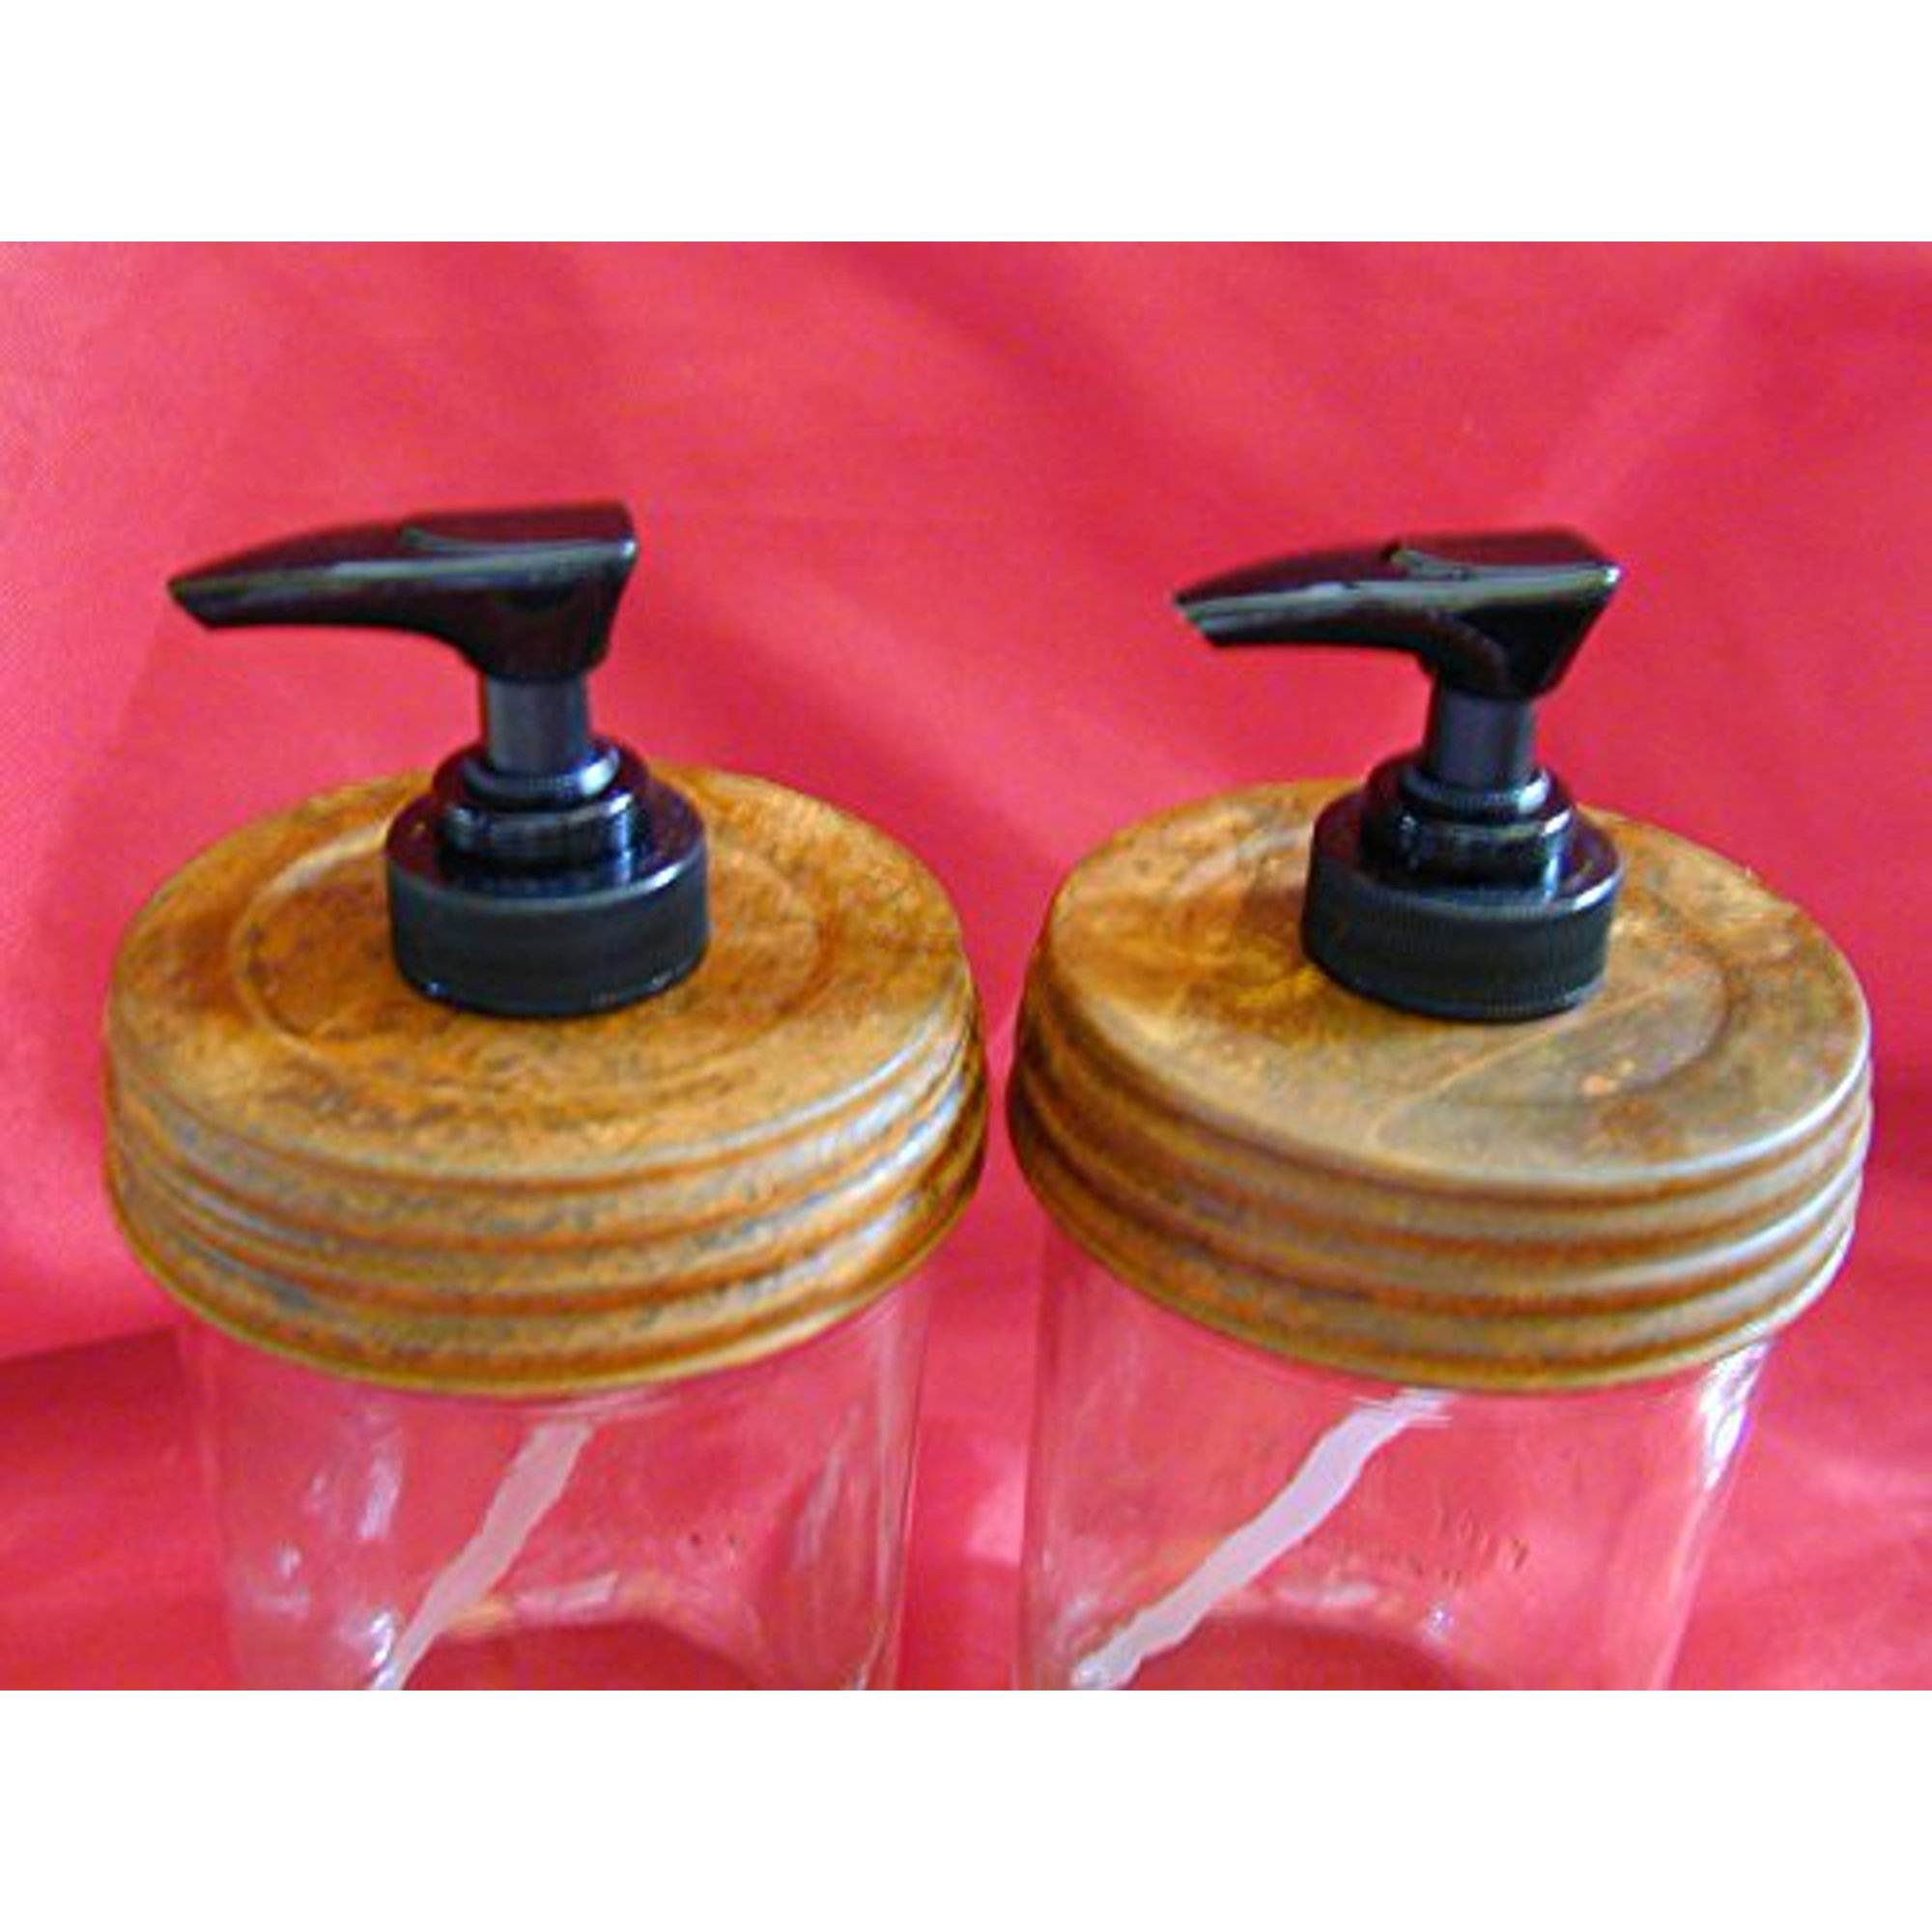 Wide Mouth Rusty Lid Double Black Pump Mason Jar Lotion Soap Dispenser